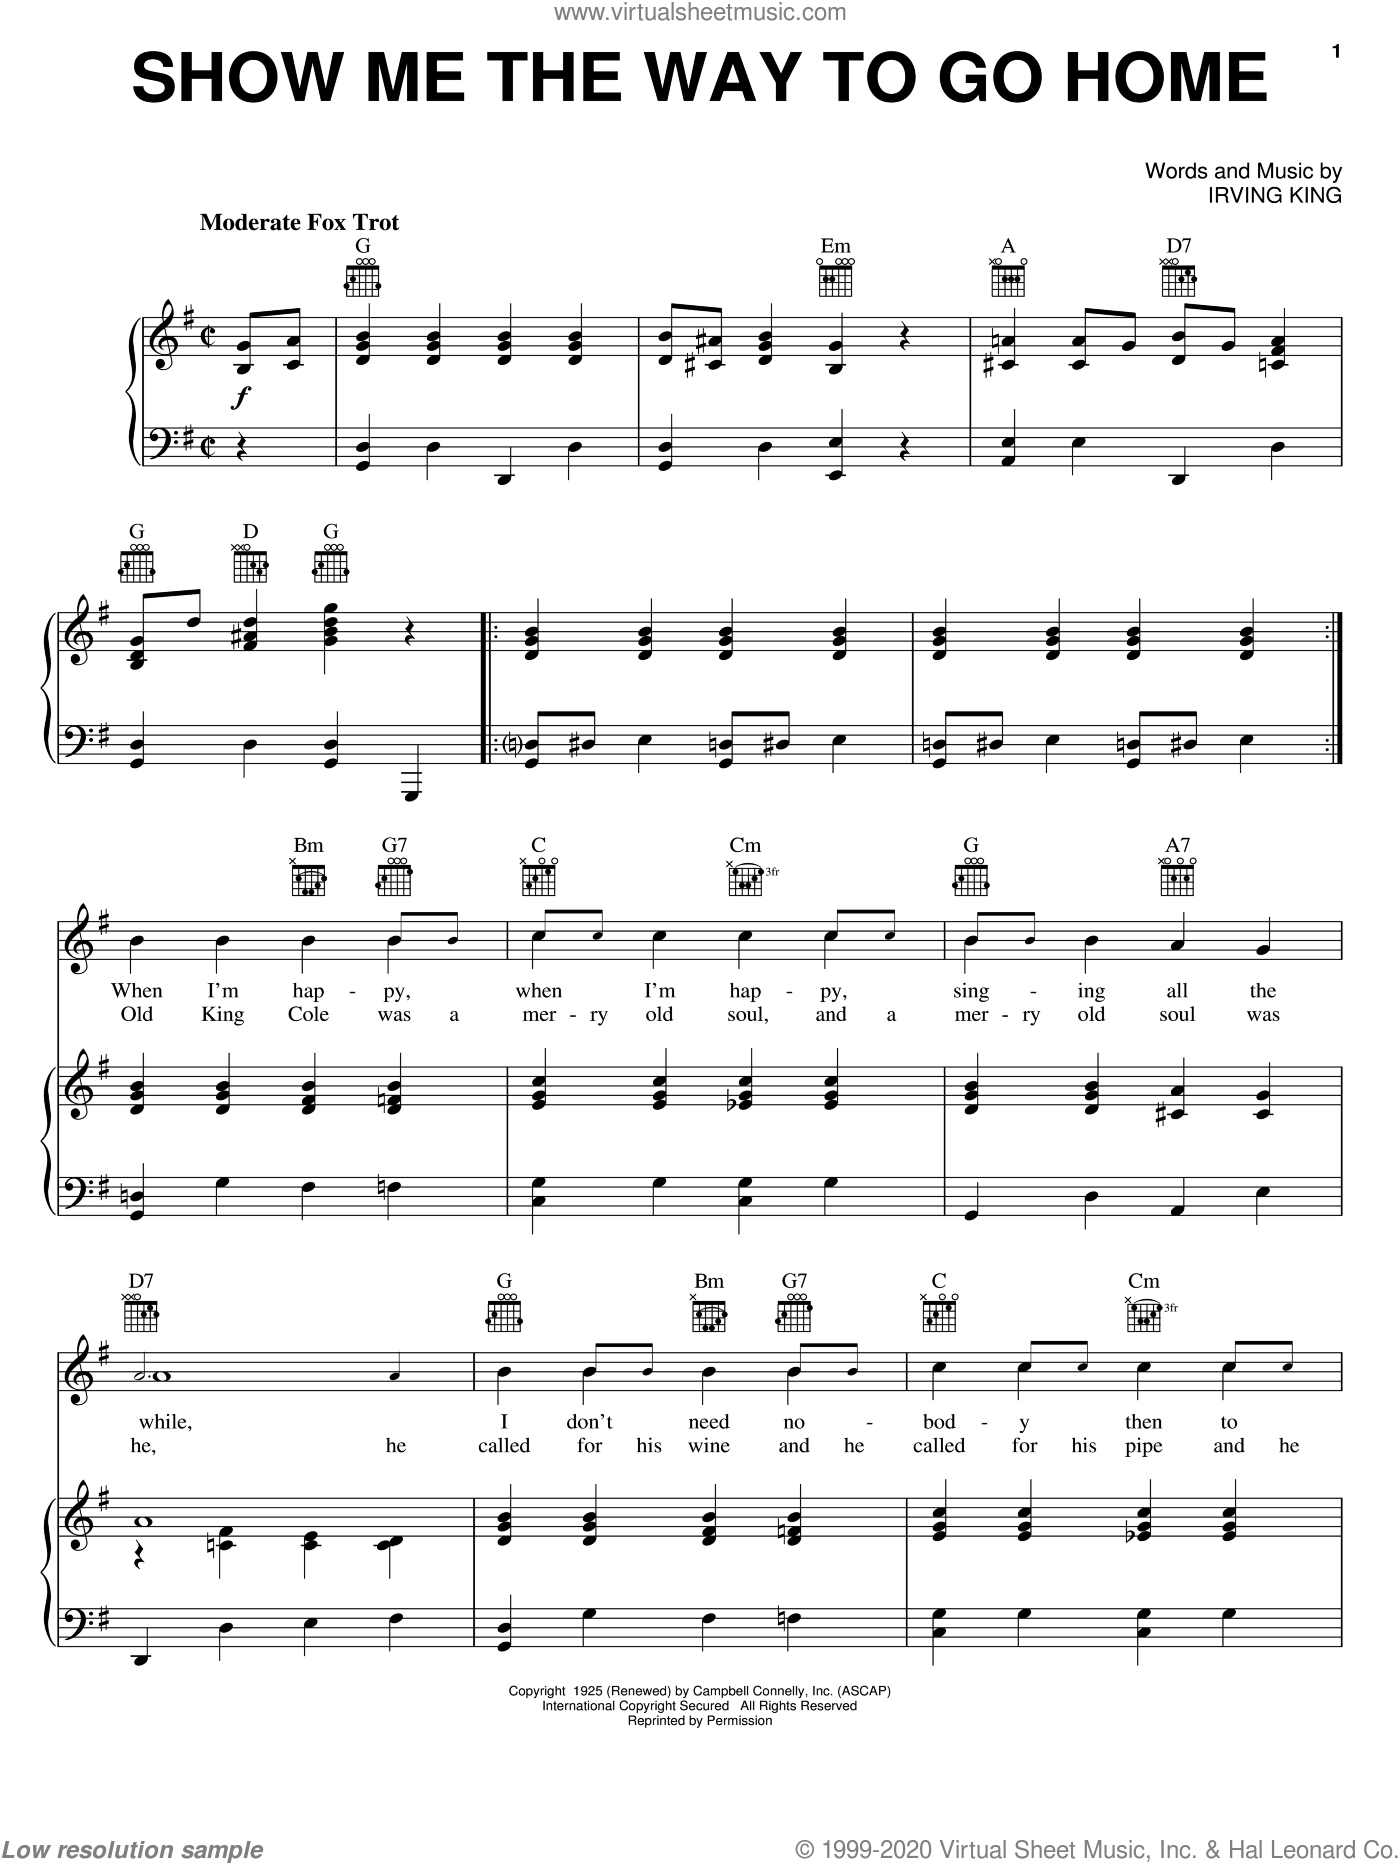 Show Me The Way To Go Home sheet music for voice, piano or guitar by Irving King, intermediate